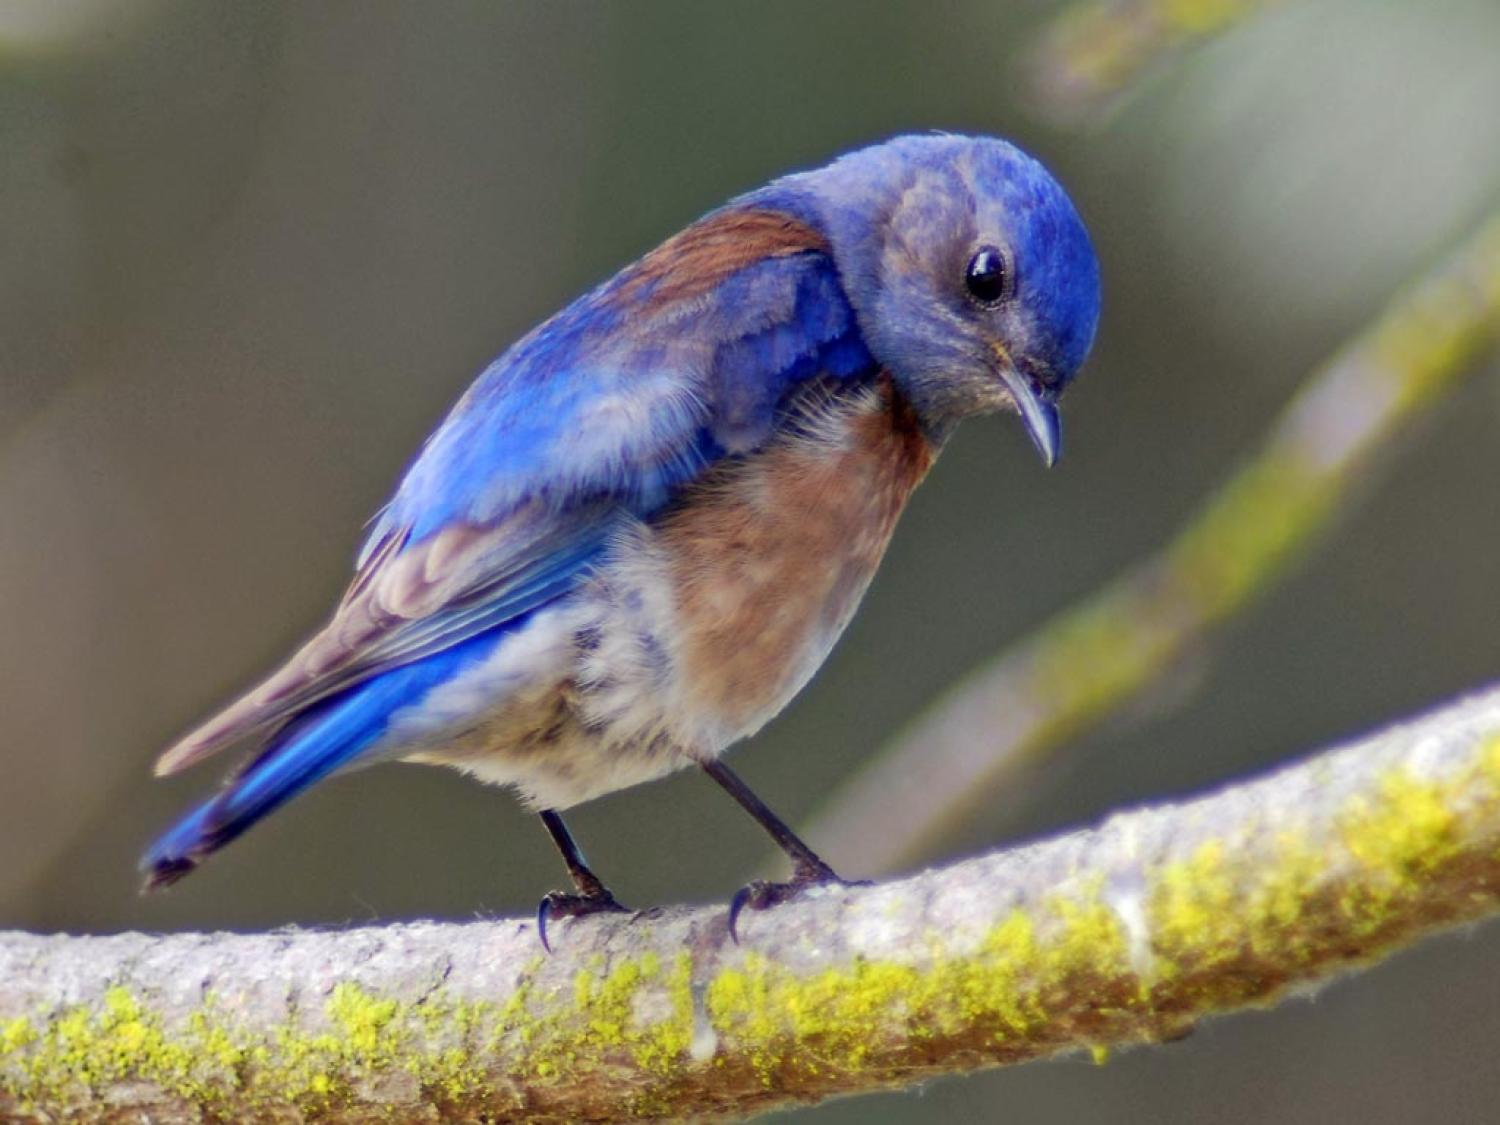 Noise pollution causes birds to have symptoms similar to PTSD